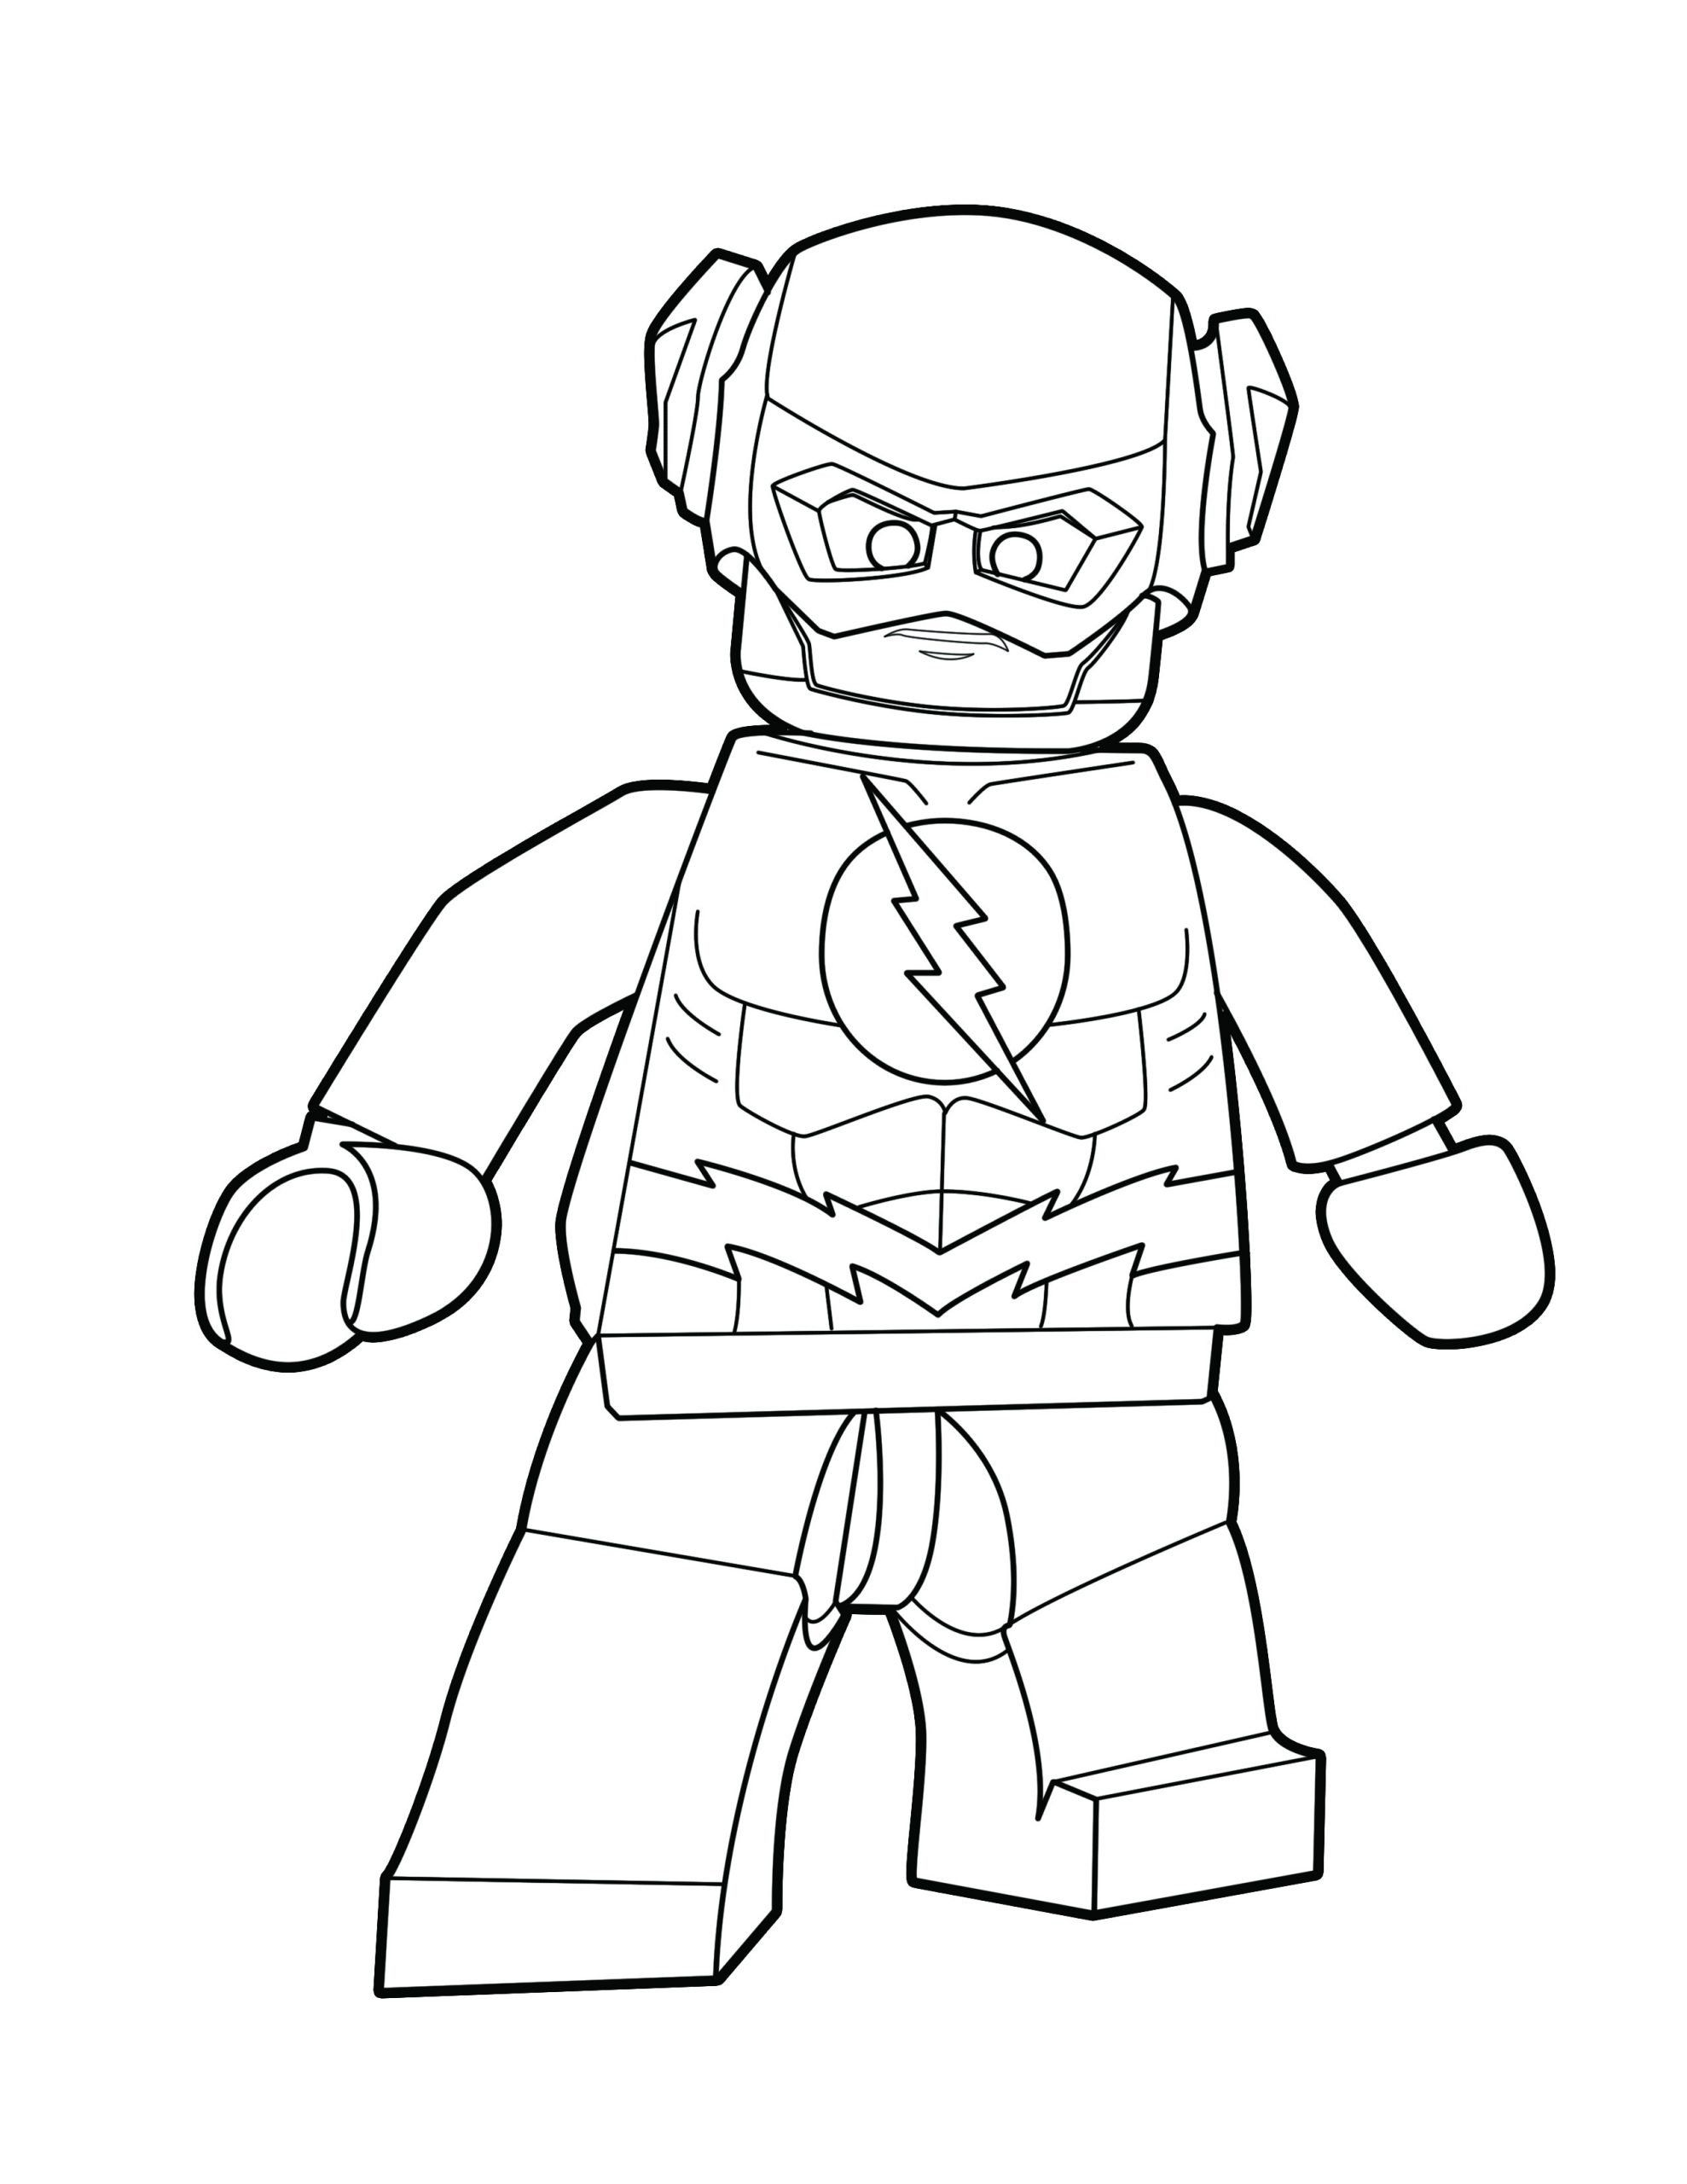 Batman Lego Coloring Pages Lego Flash Coloring Pages Coloring Home In 2020 Lego Coloring Pages Coloring Pages Lego Coloring